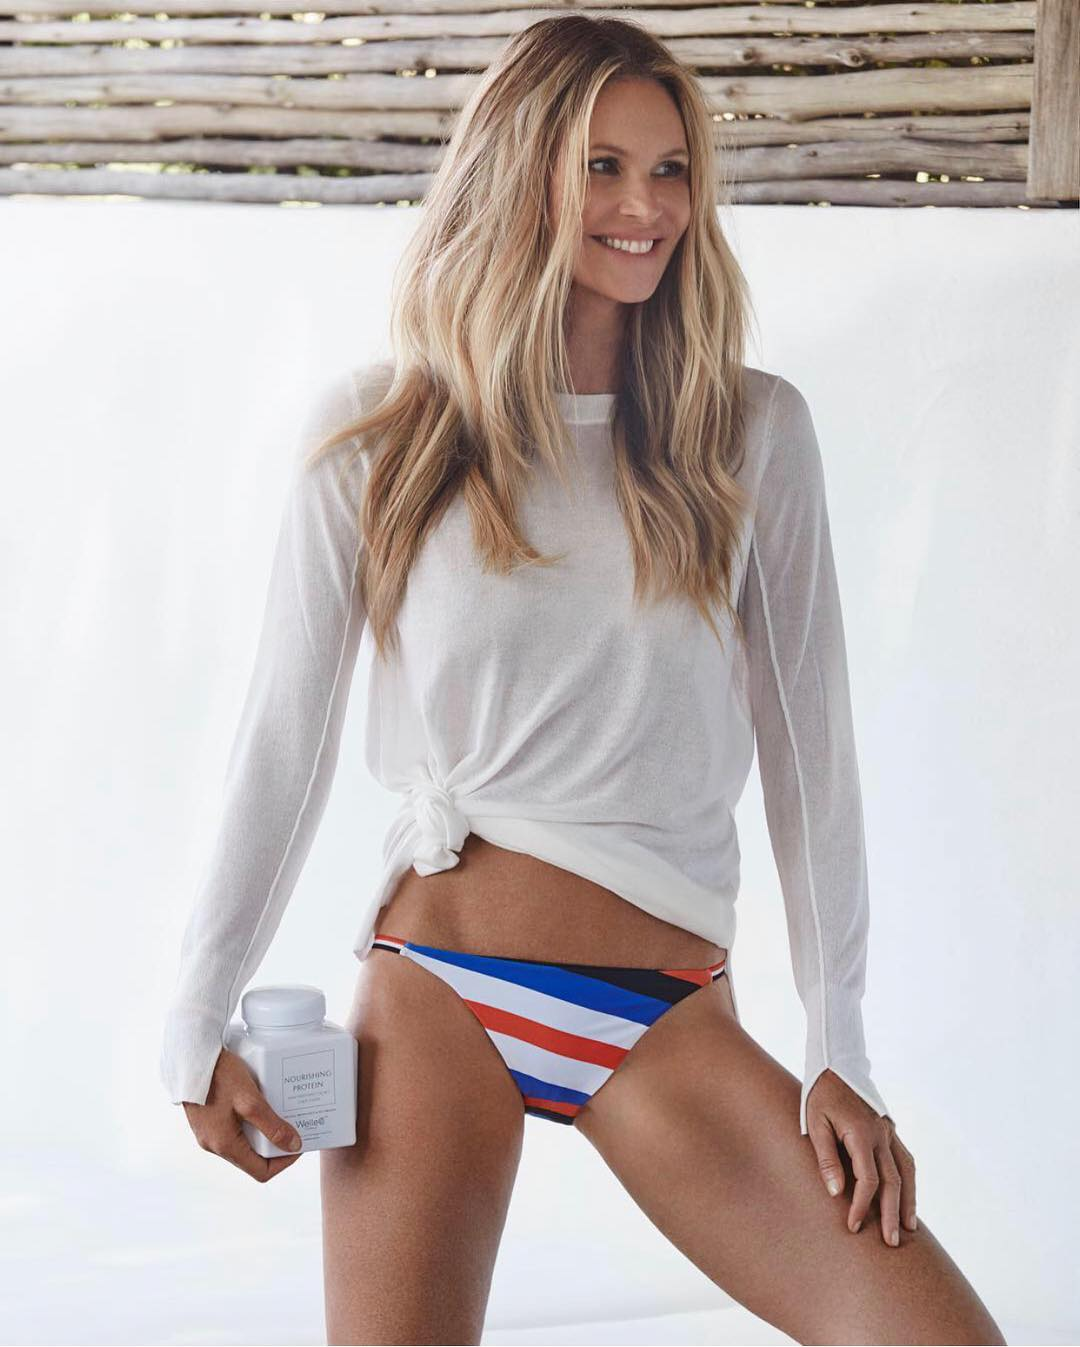 White Top And Multistriped Bikini Bottoms On Elle Macpherson 2019